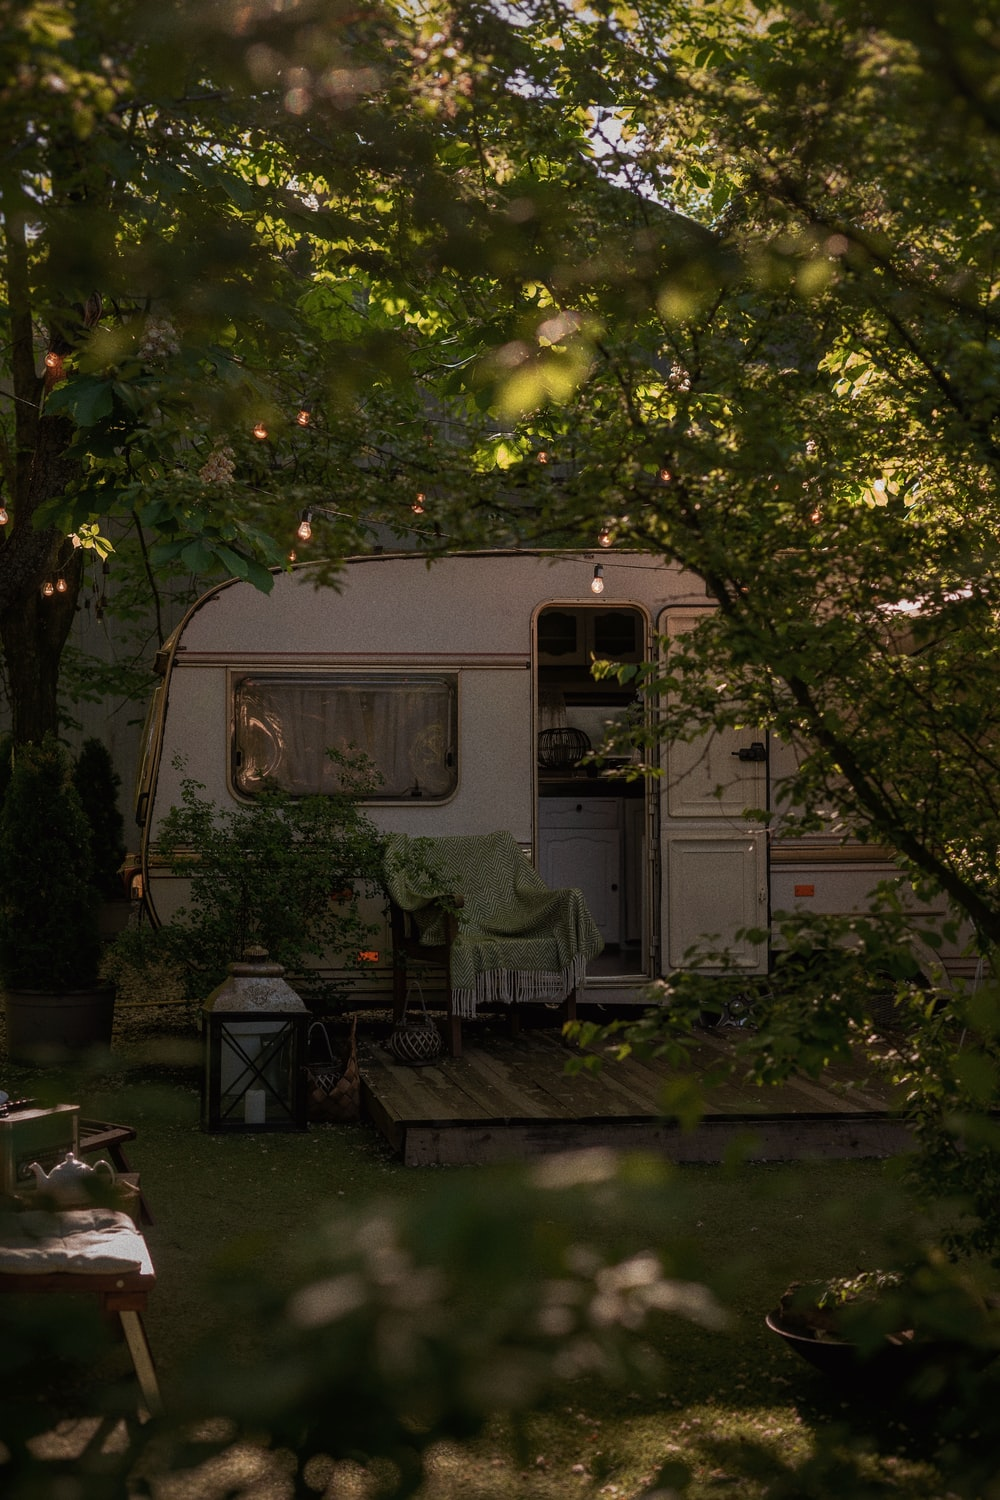 white and green rv trailer under green tree during daytime